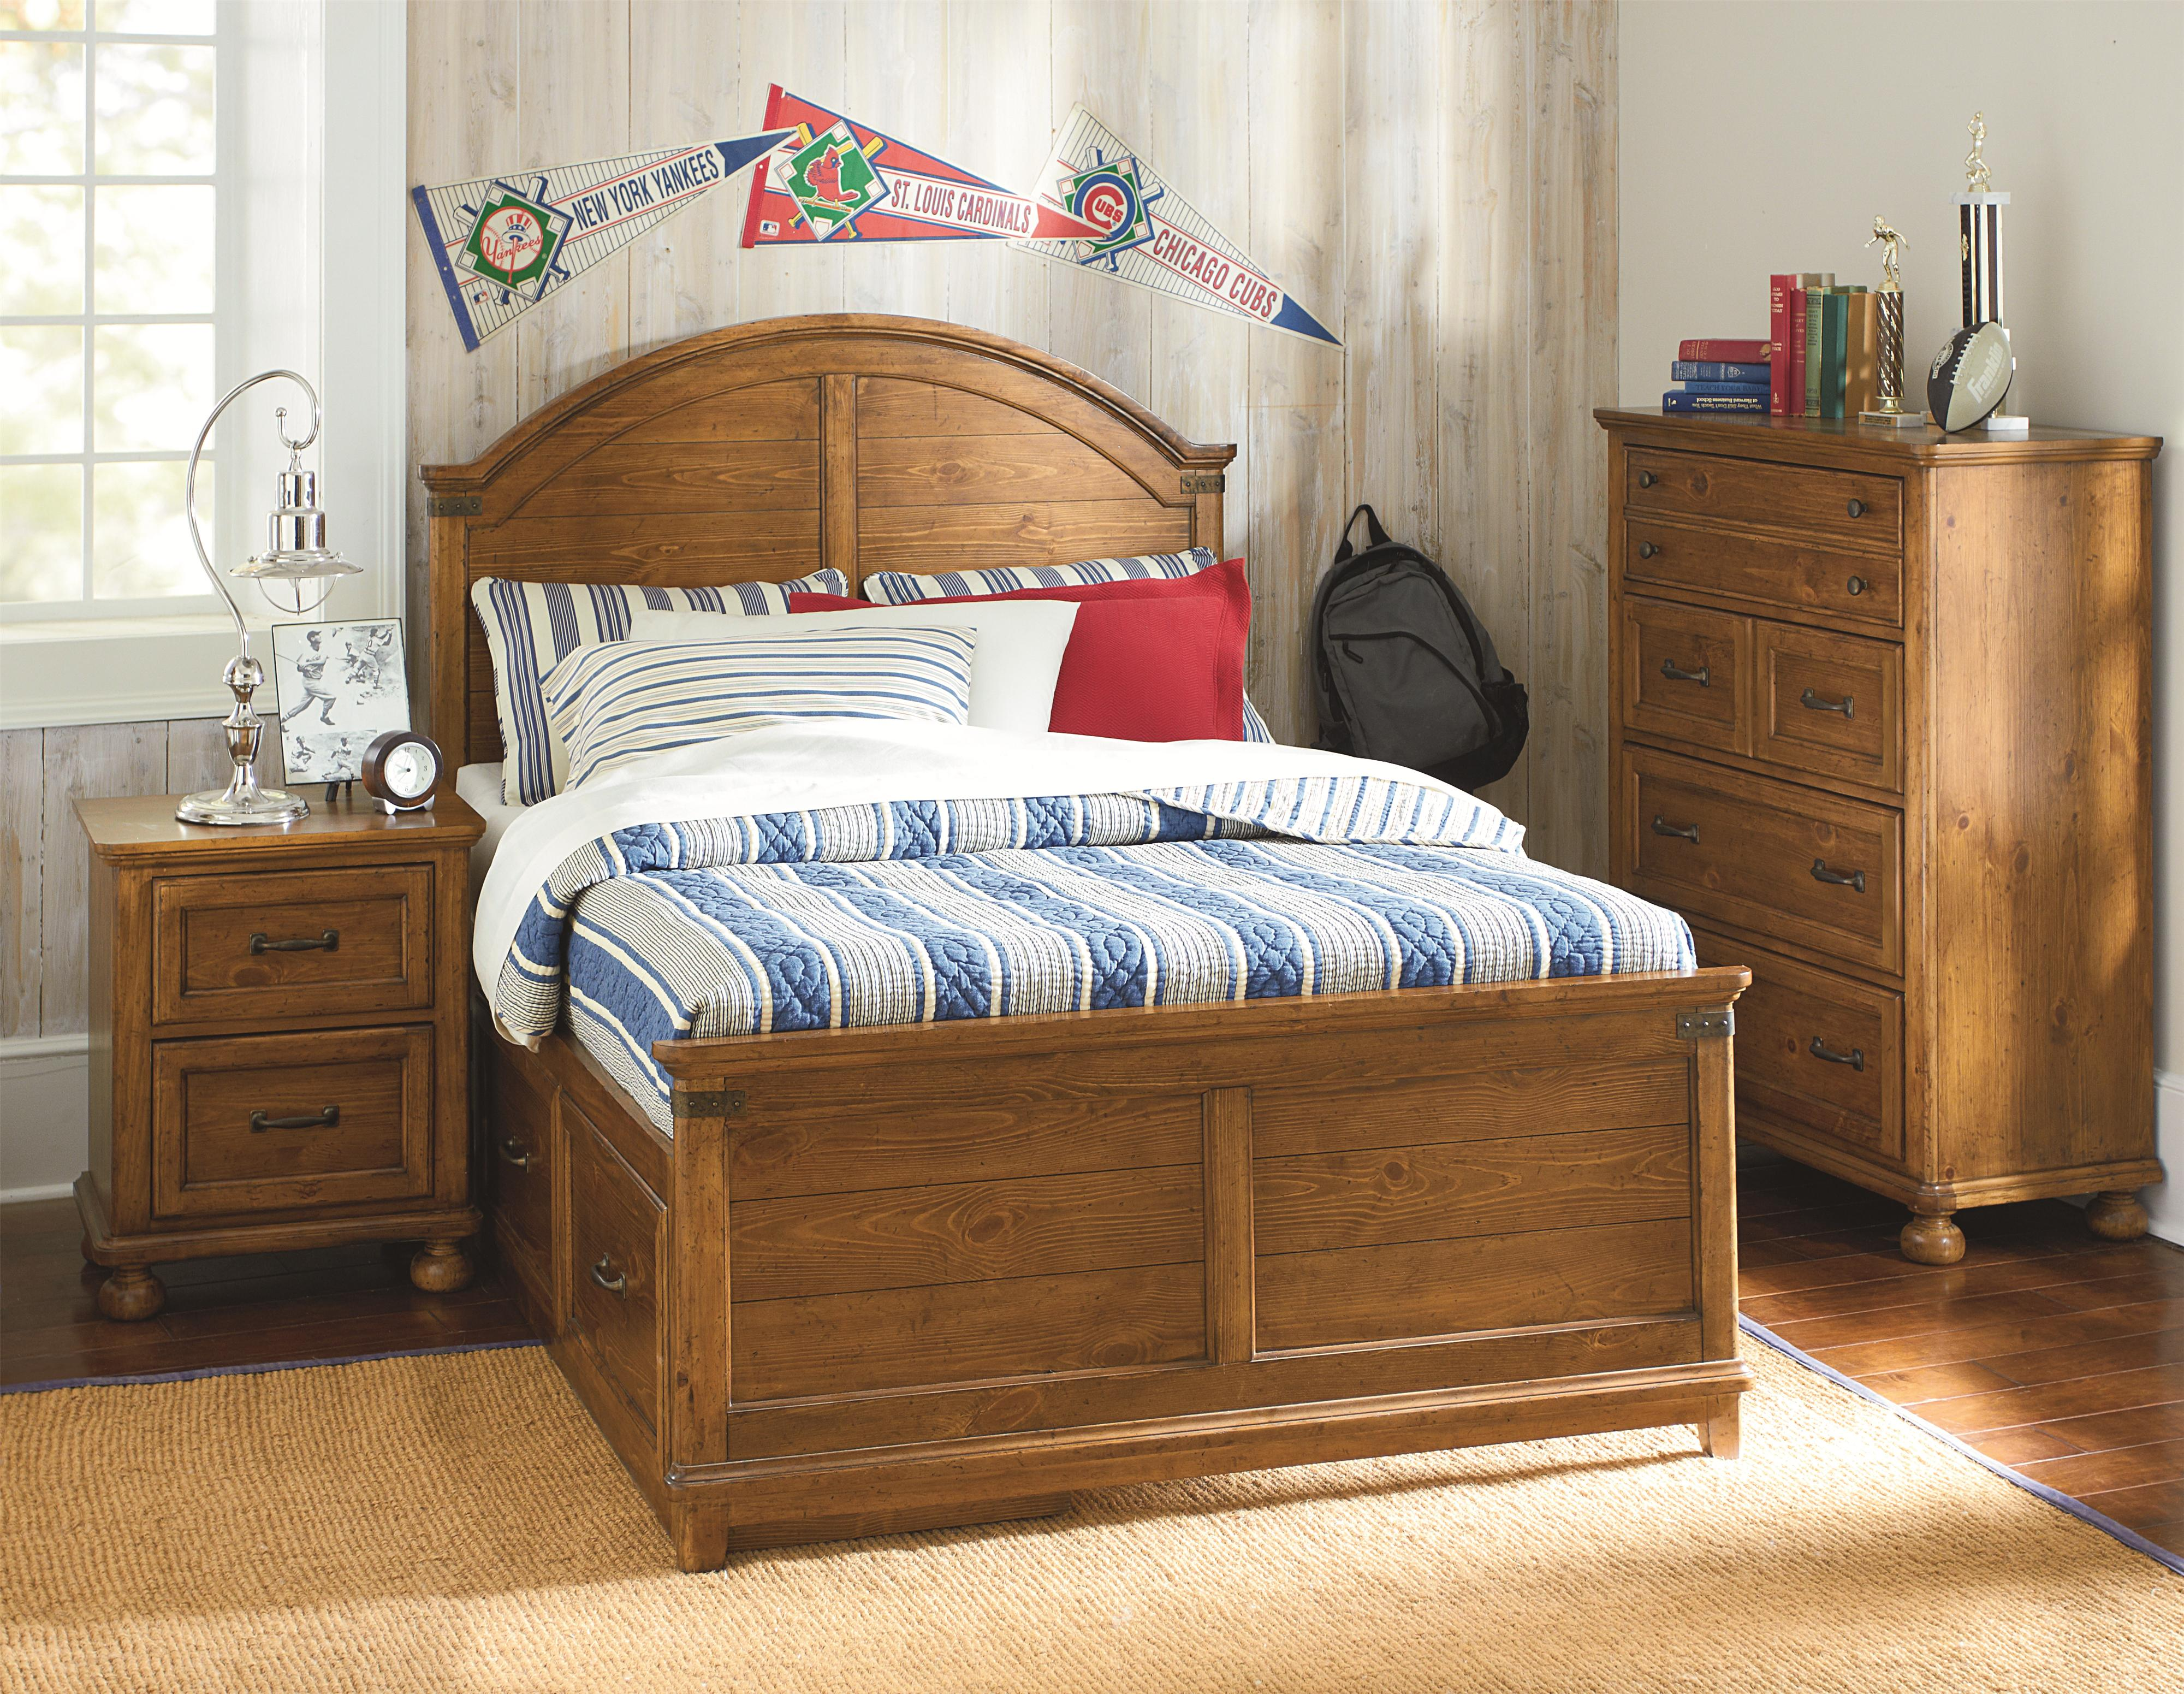 Legacy Classic Kids Bryce Canyon Full Bedroom Group - Item Number: 3900 F Bedroom Group 3